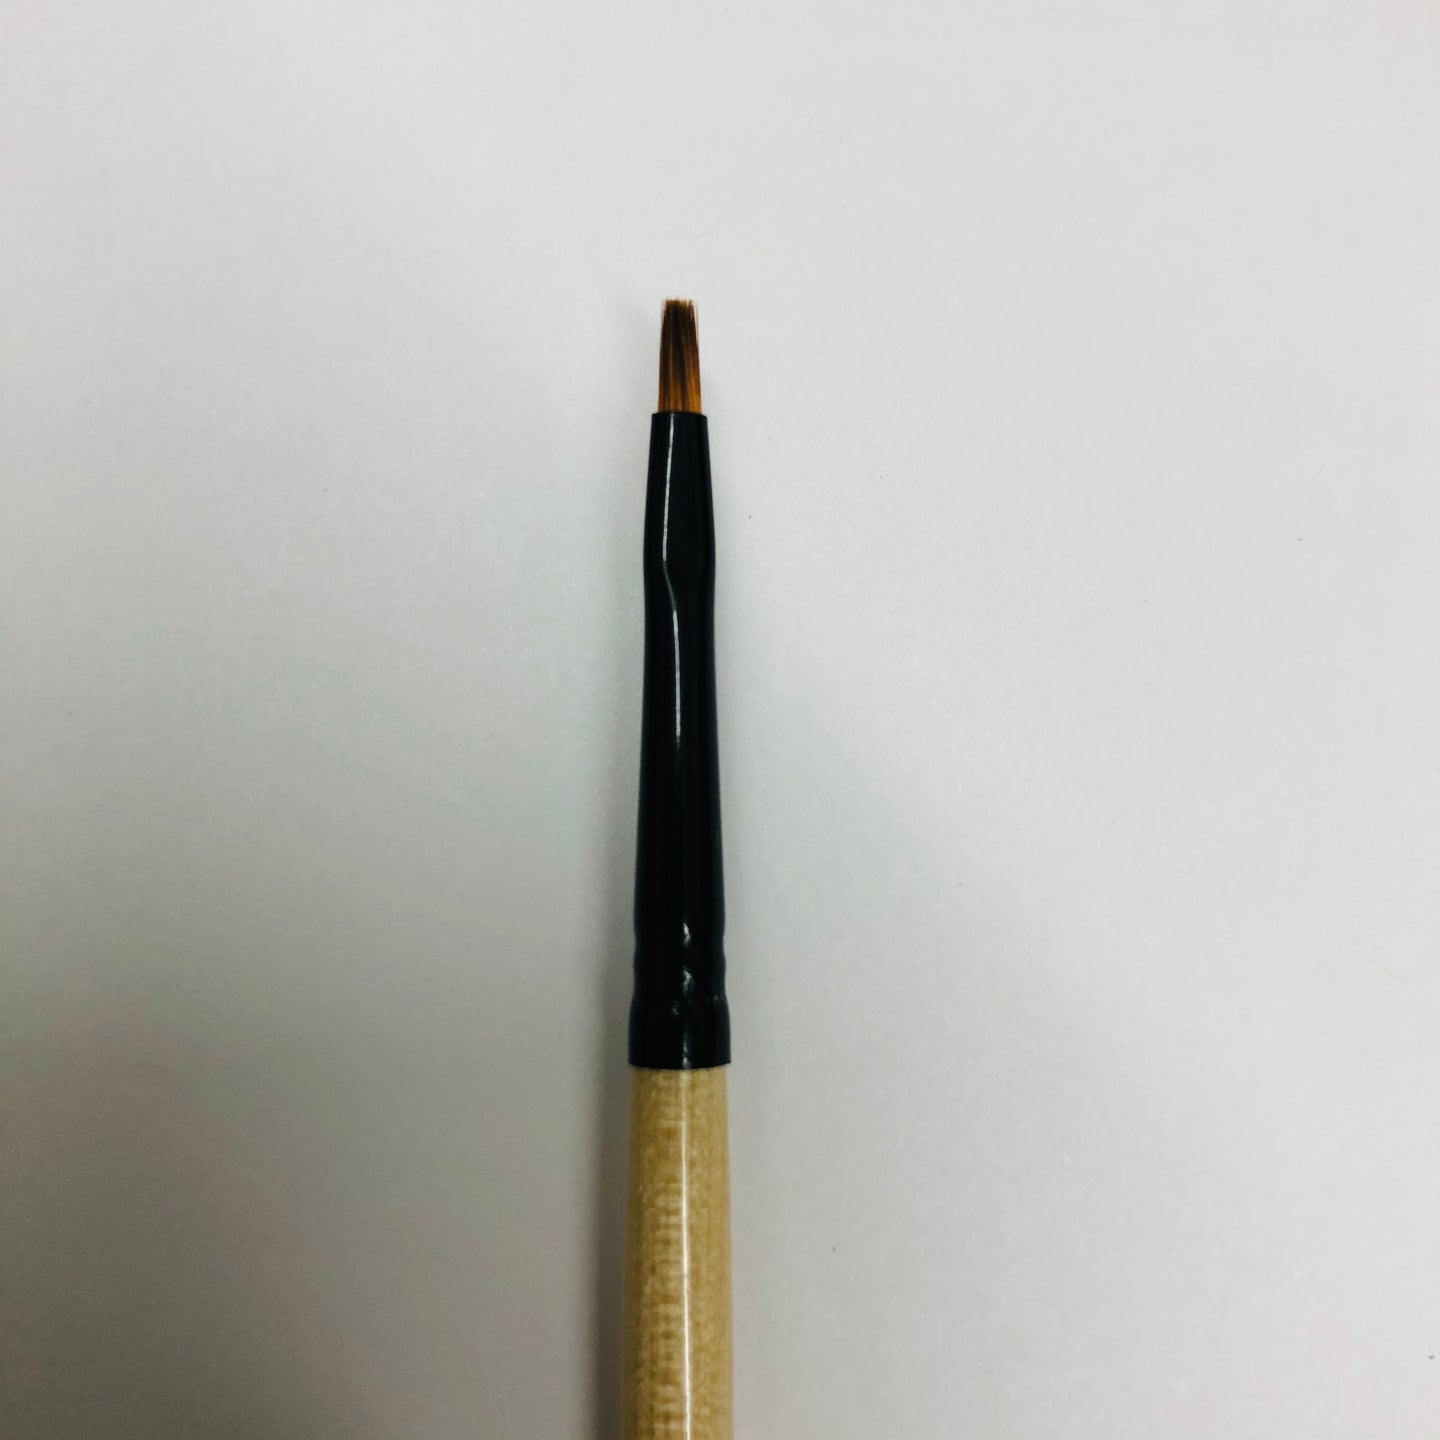 Dynasty Black Gold Paint Brush 206S Shader 0 12172